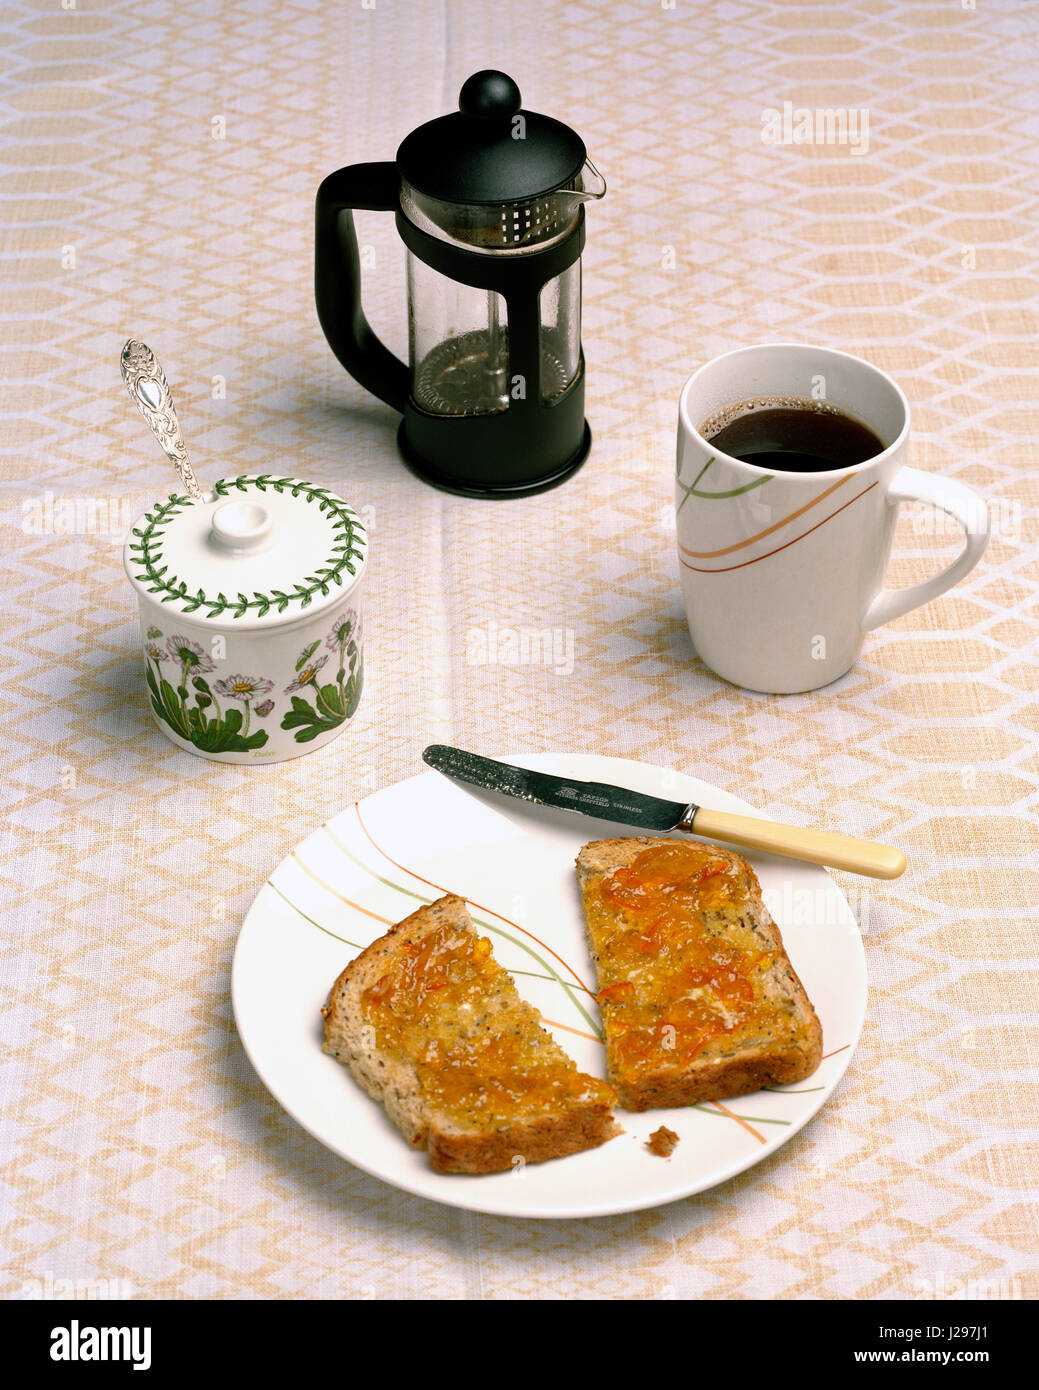 Breakfast table with coffee and toast and marmalade - Stock Image